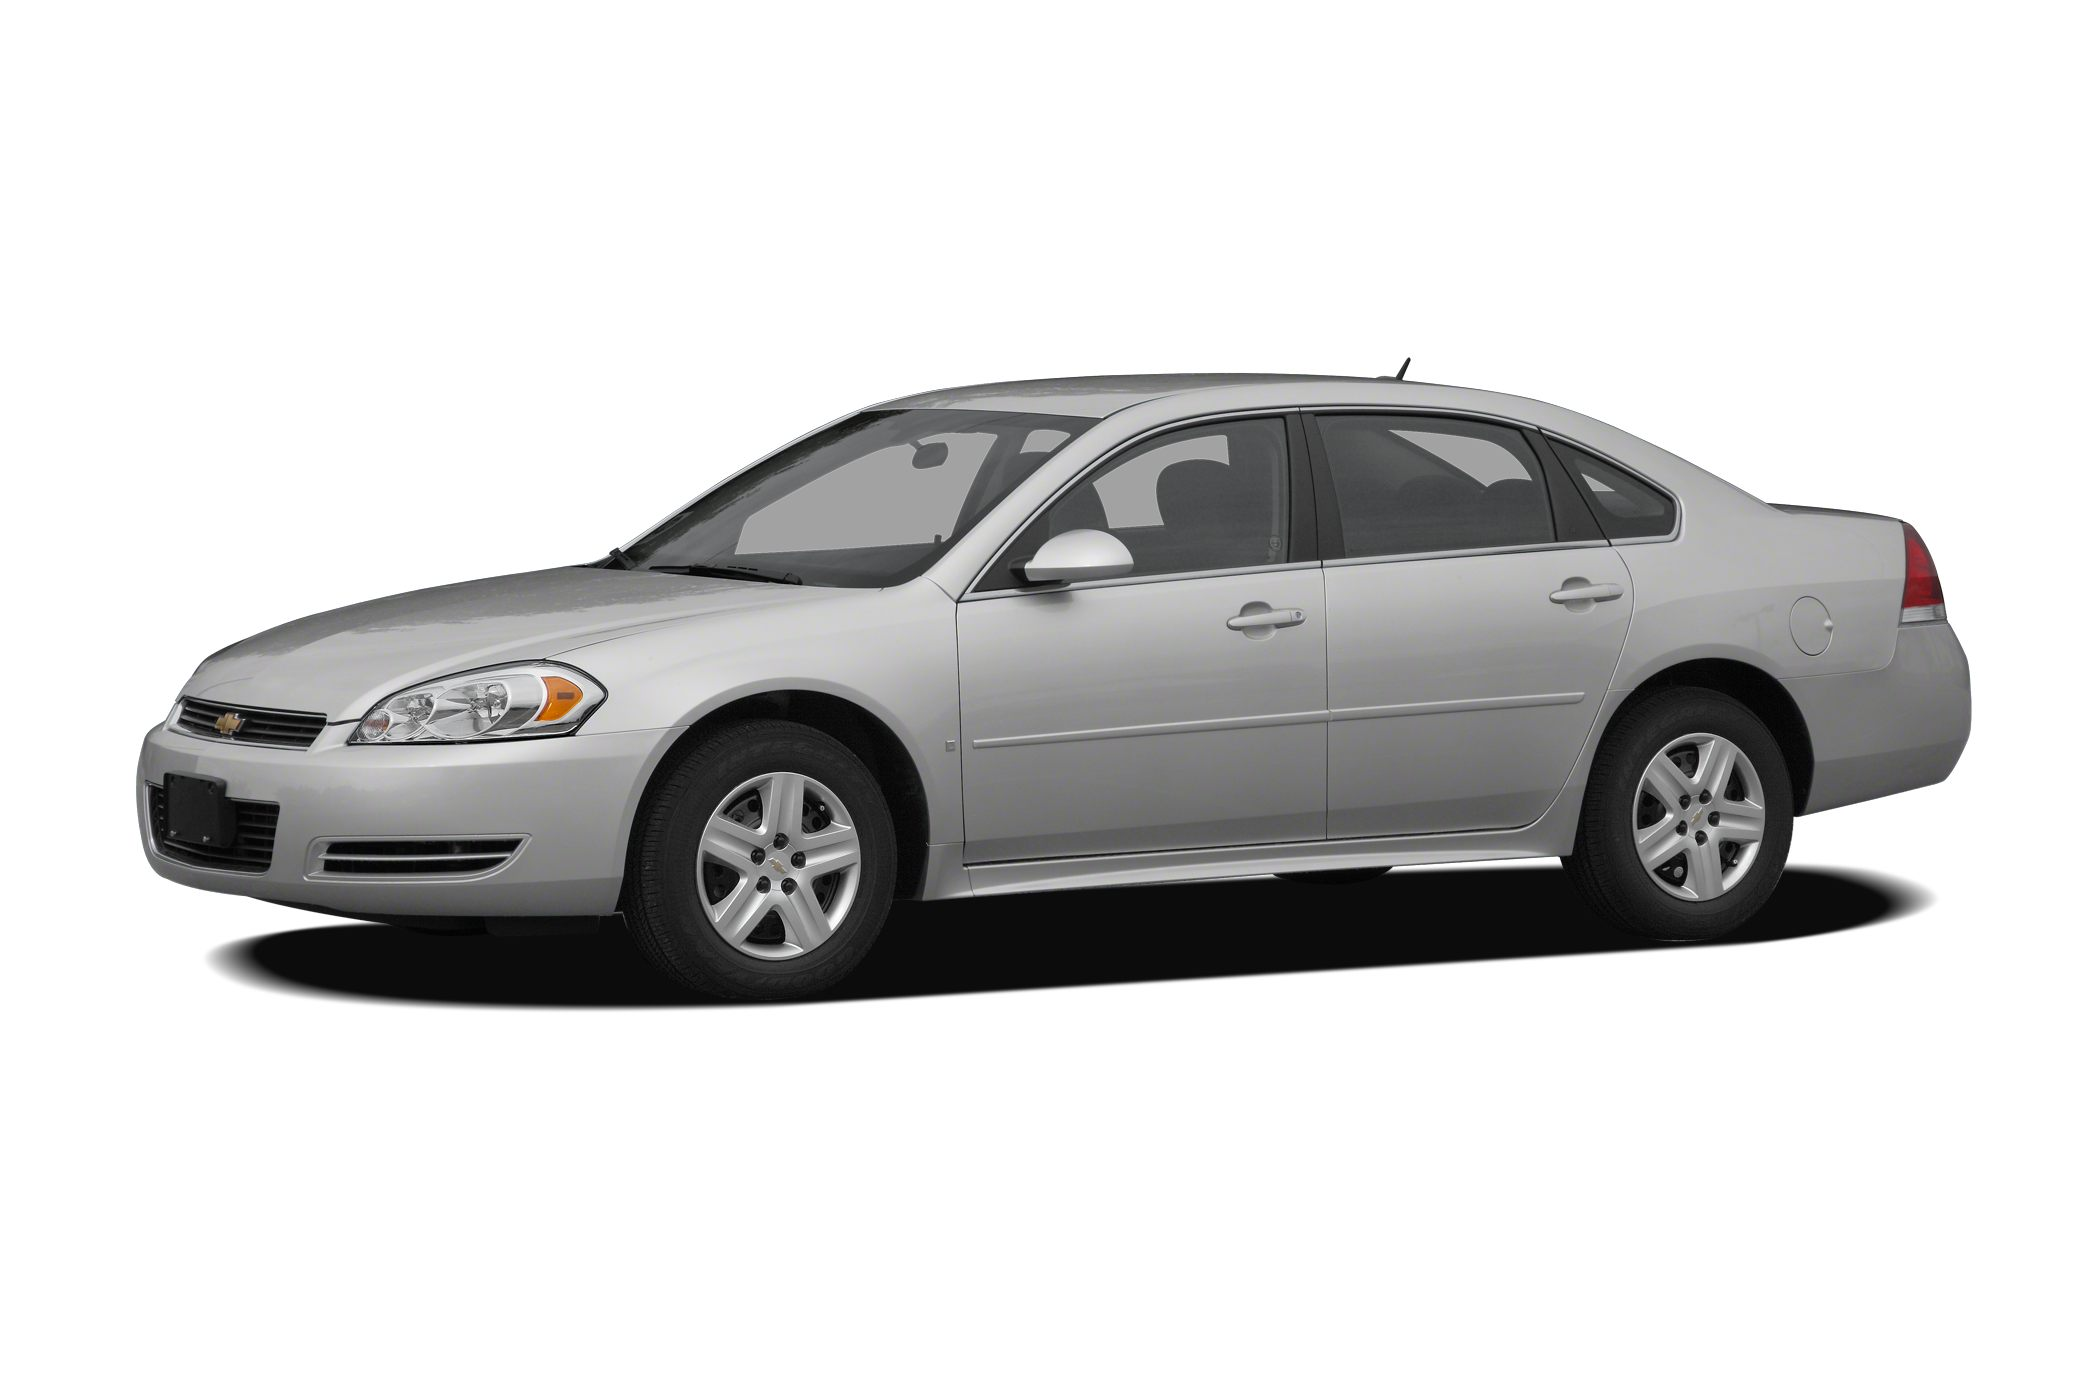 2010 Chevrolet Impala LS Sedan for sale in San Antonio for $8,995 with 114,699 miles